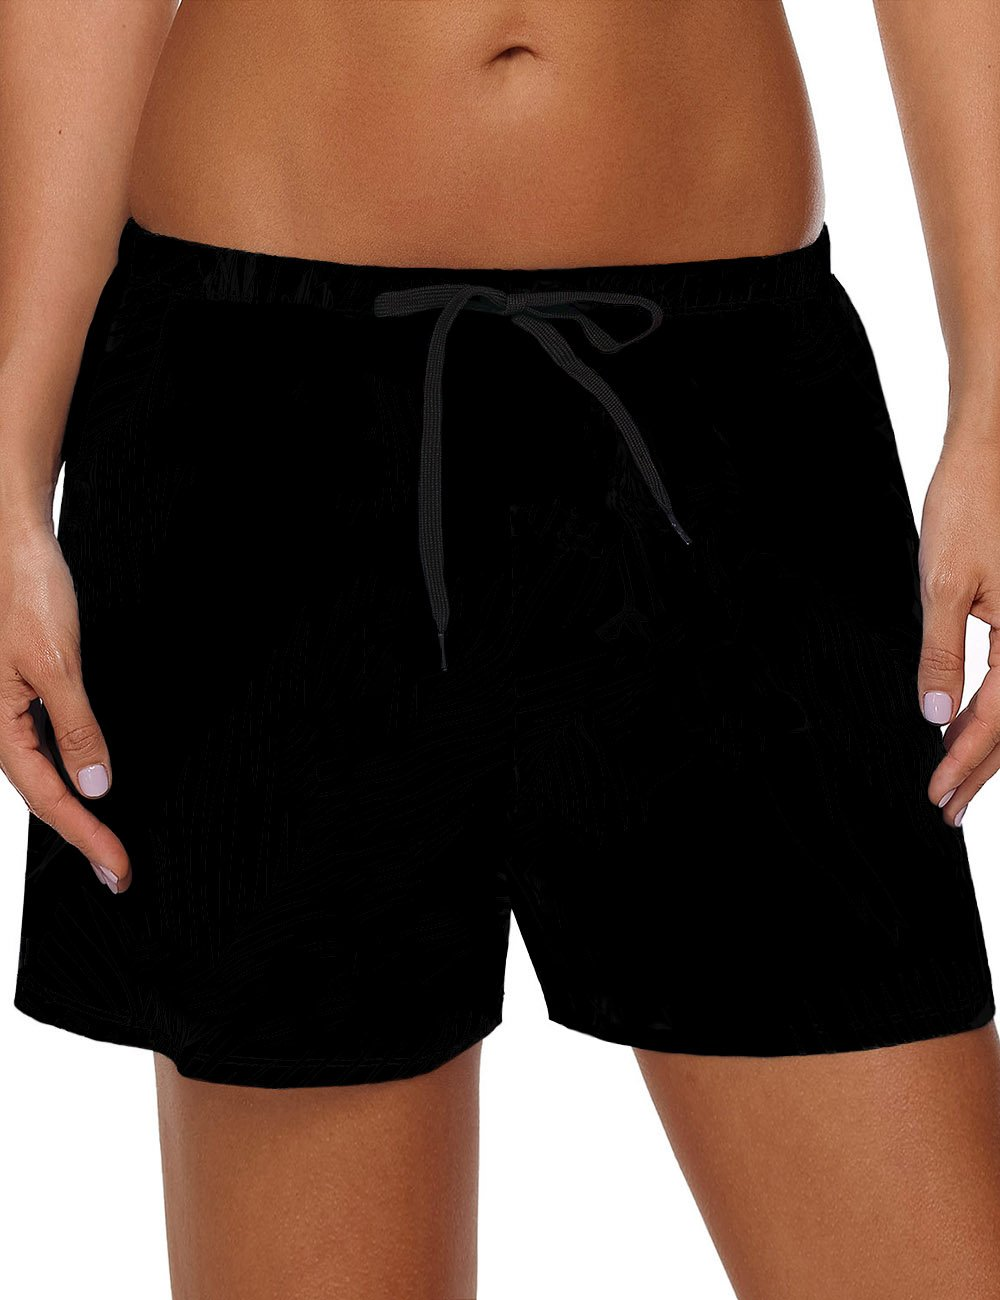 Utyful Women's Black Casual Quick Dry Drawstring Swimsuit Beach Board Shorts Size X-Large (Fit US 16 - US 18)